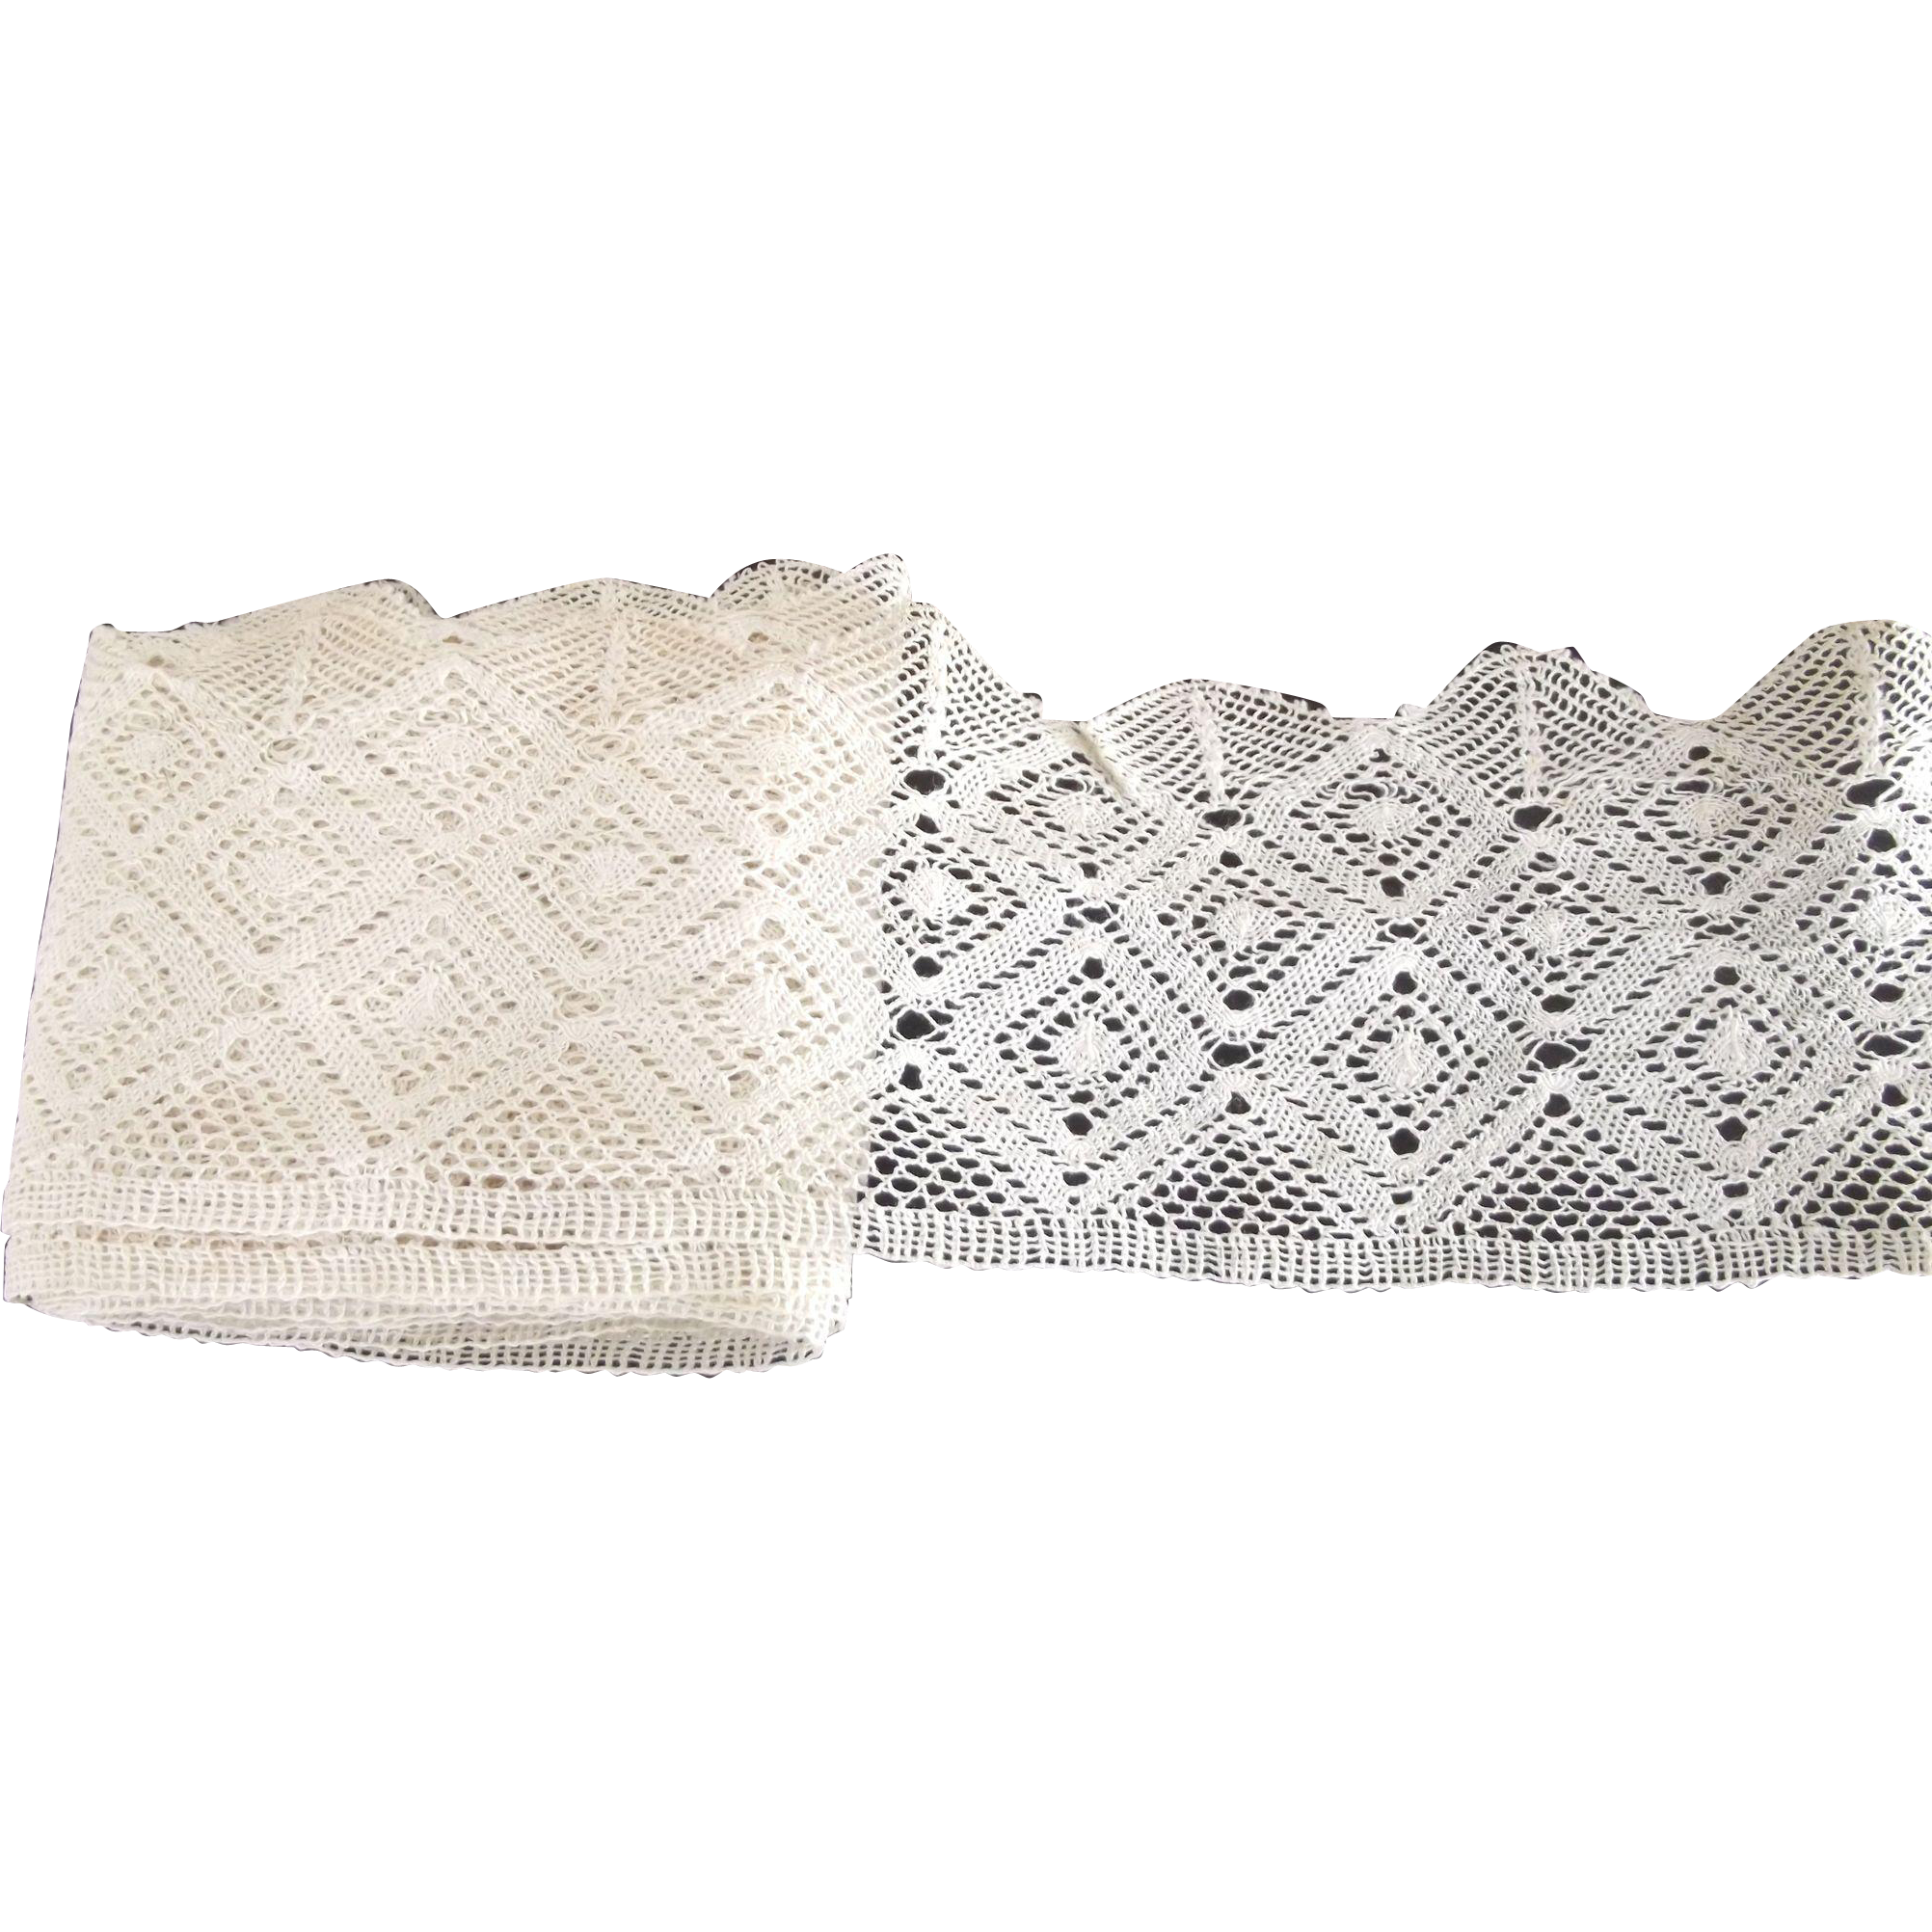 Early Wide Lace For Doll Clothes, Trimming, Dresses, Linens